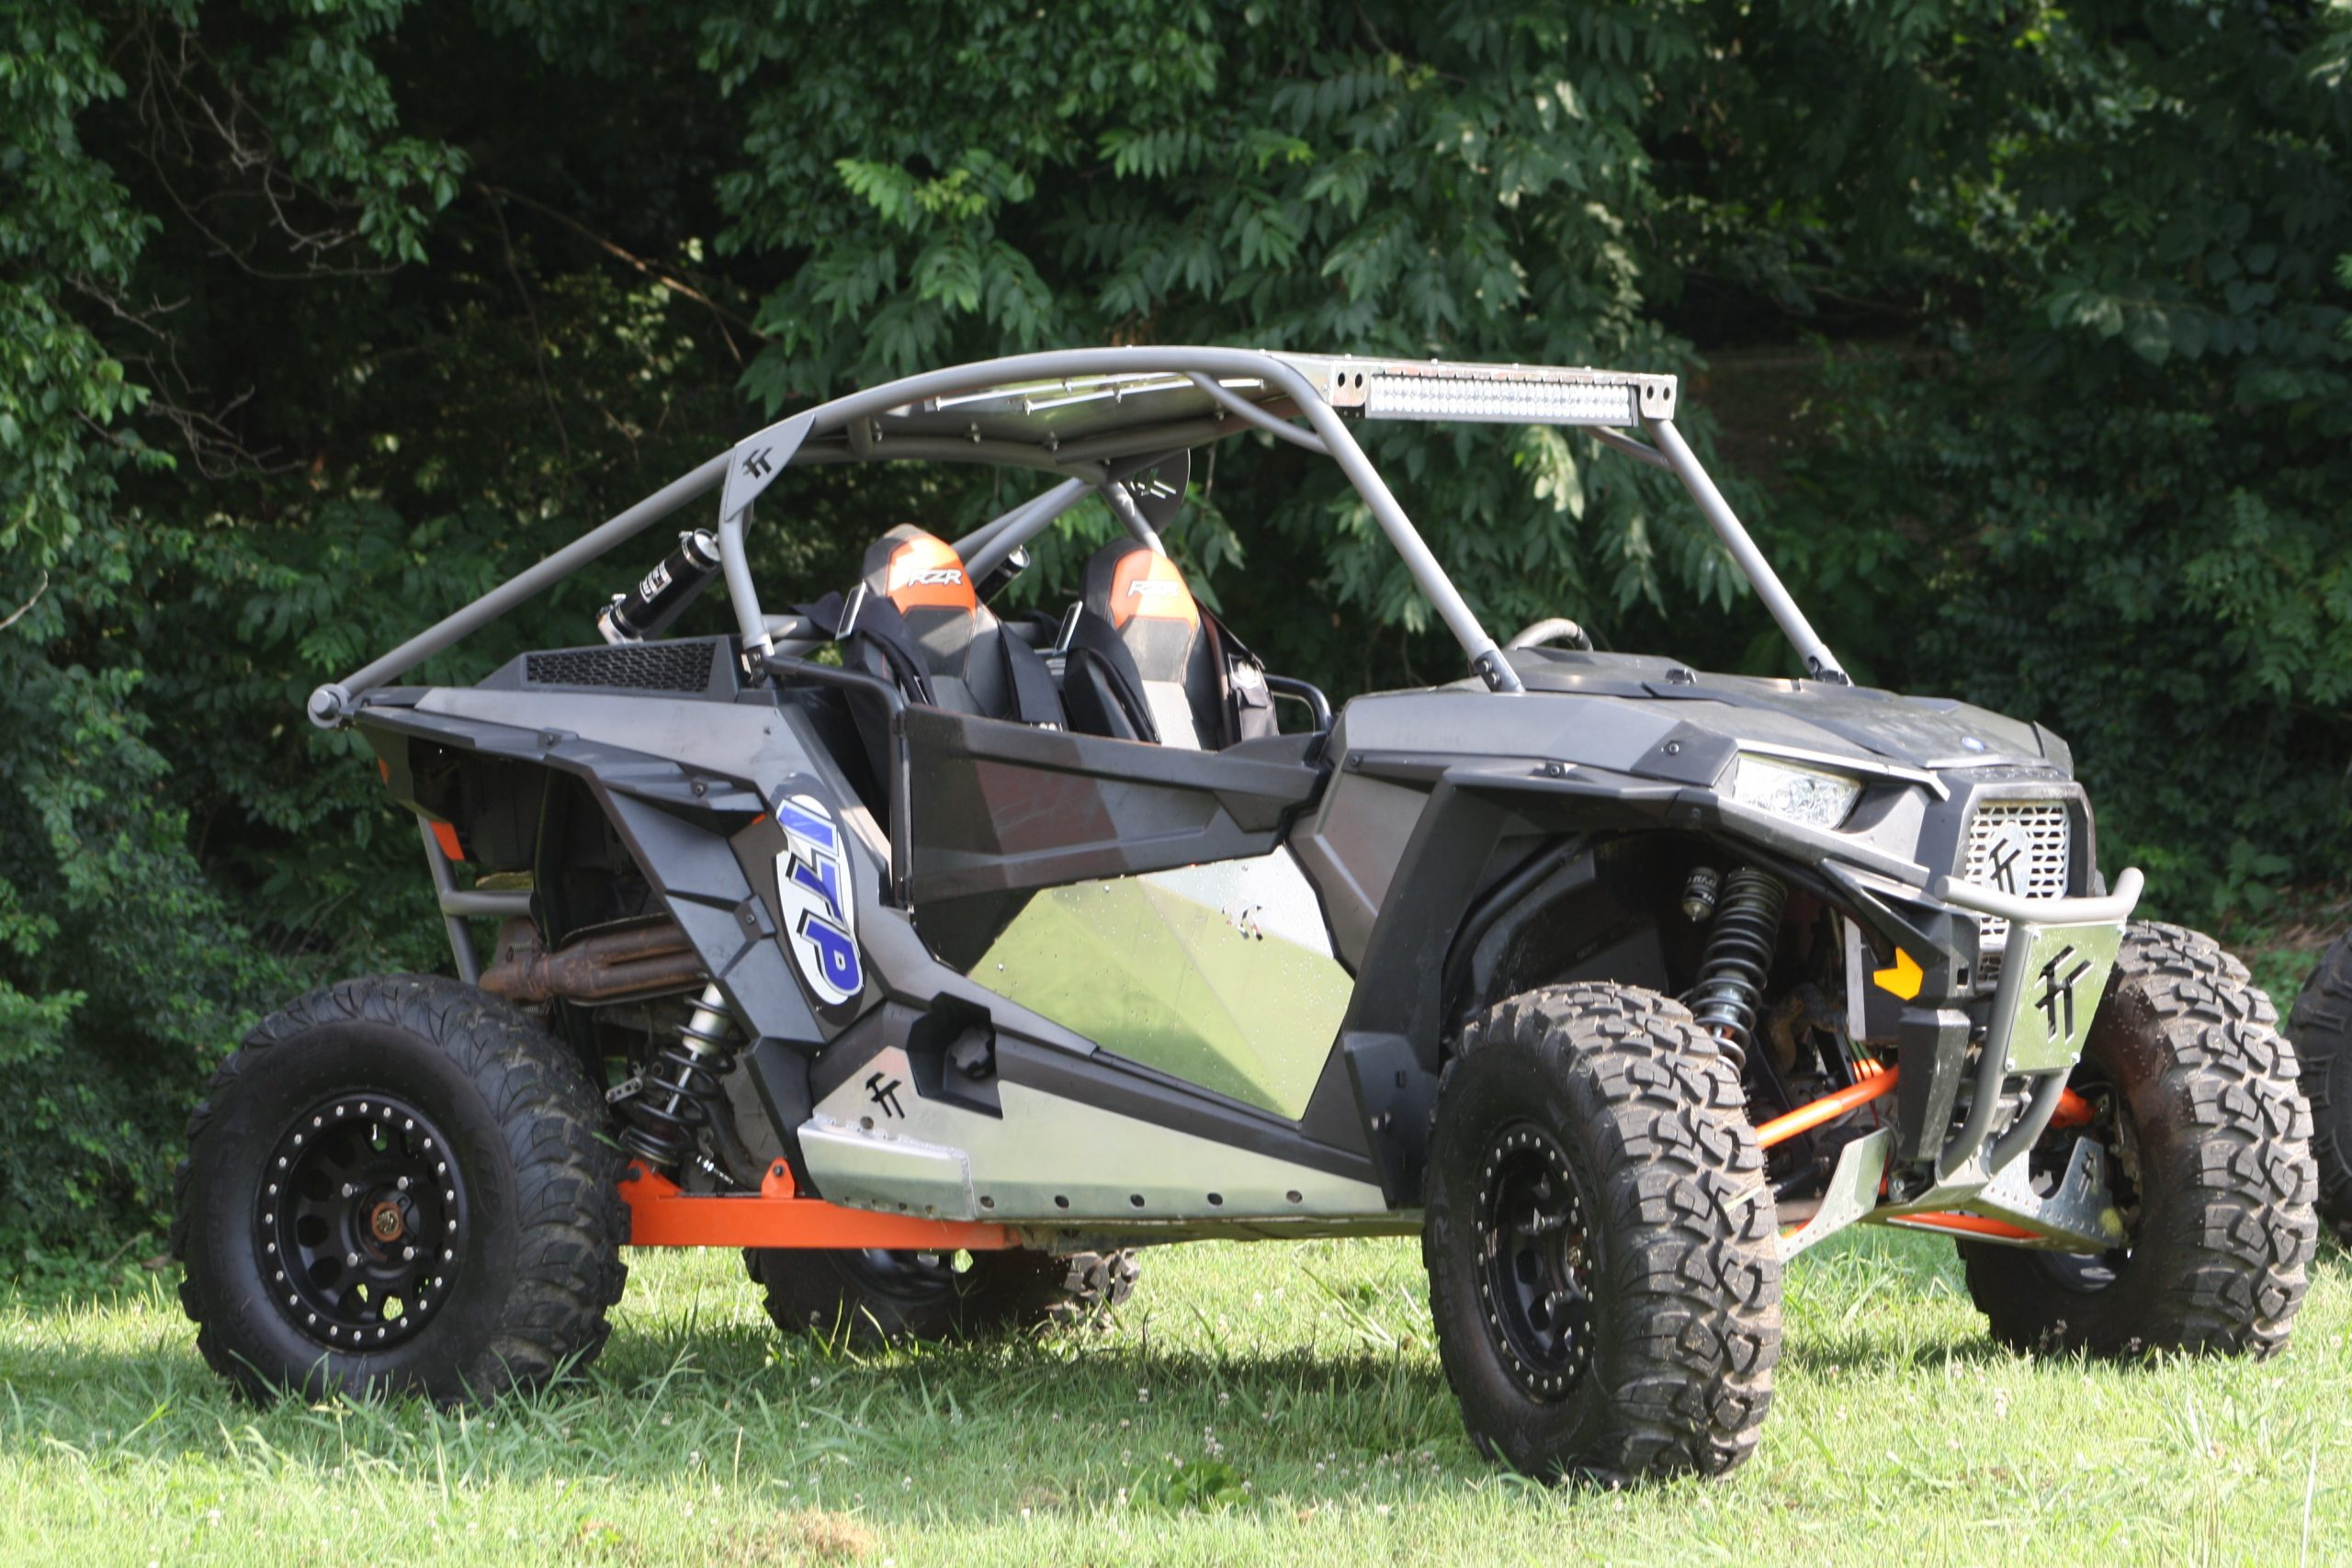 Polaris Rzr Roll Cages Tony S Toys Custom Side By Side Fabrications